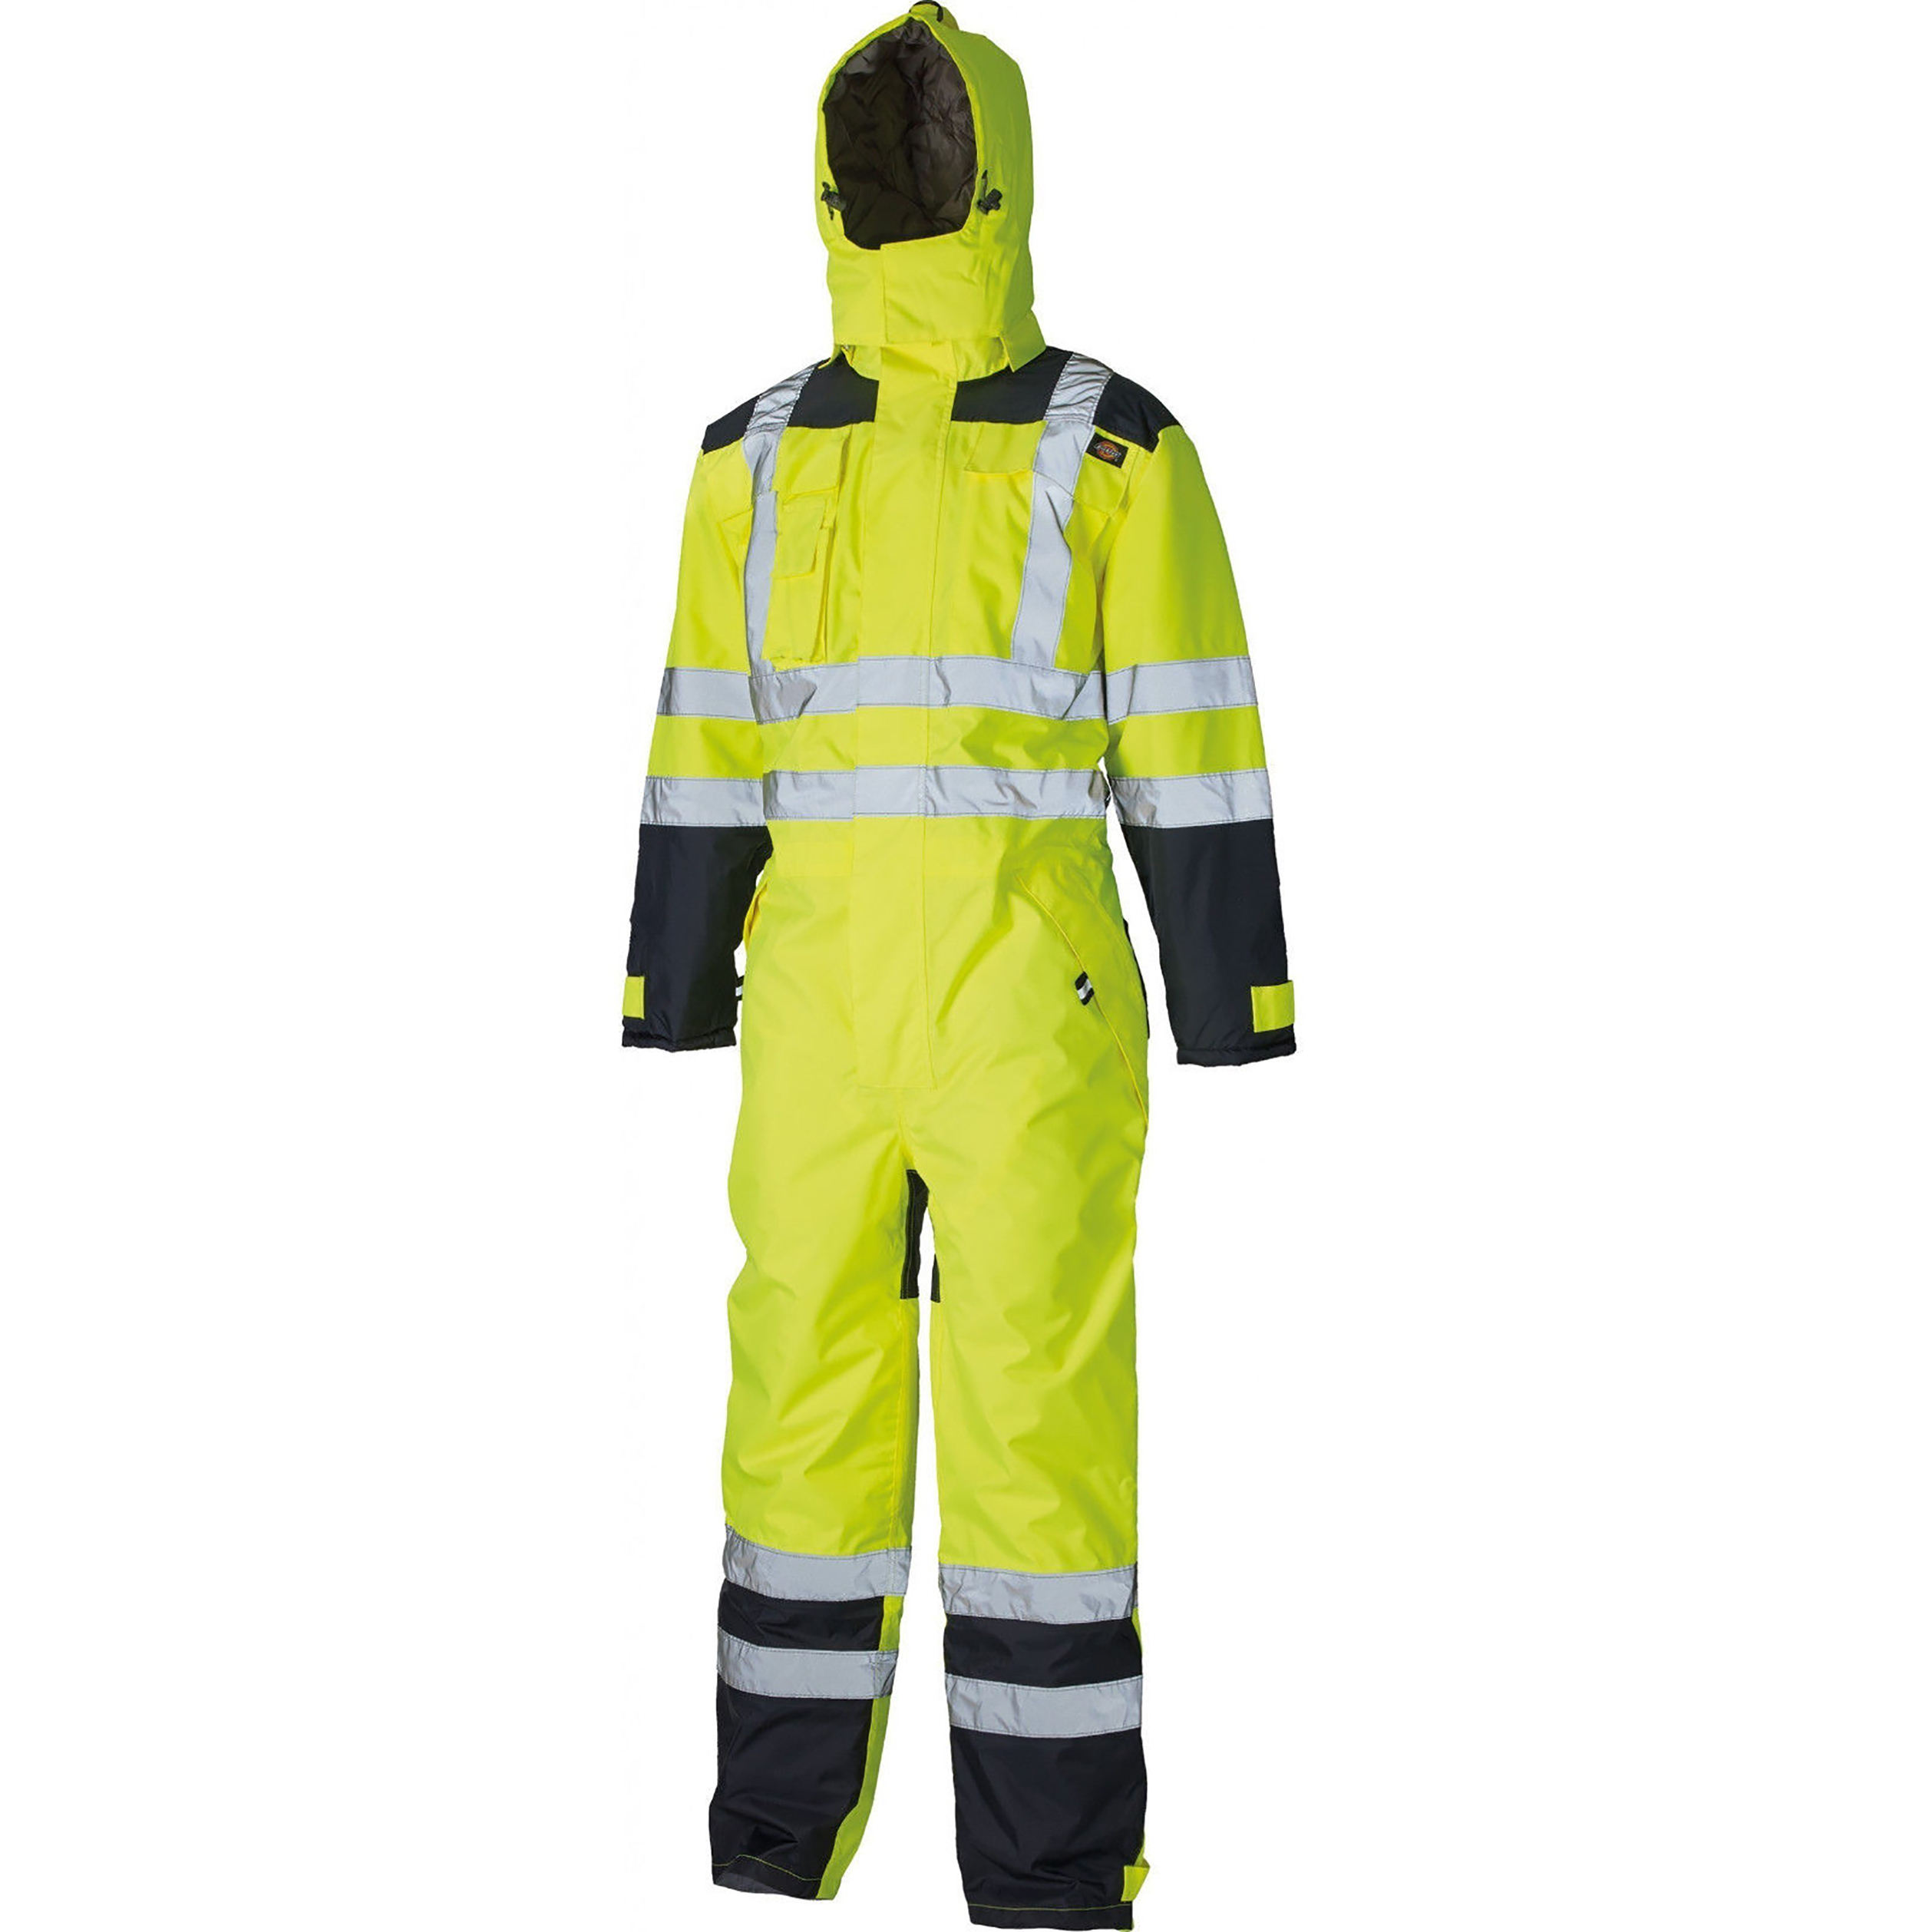 Hot Cotton PU Coat Winter Harsh Cold Condition Working Waterproof Windproof Wear Hi Vis Safety Workwear Reflective Coverall